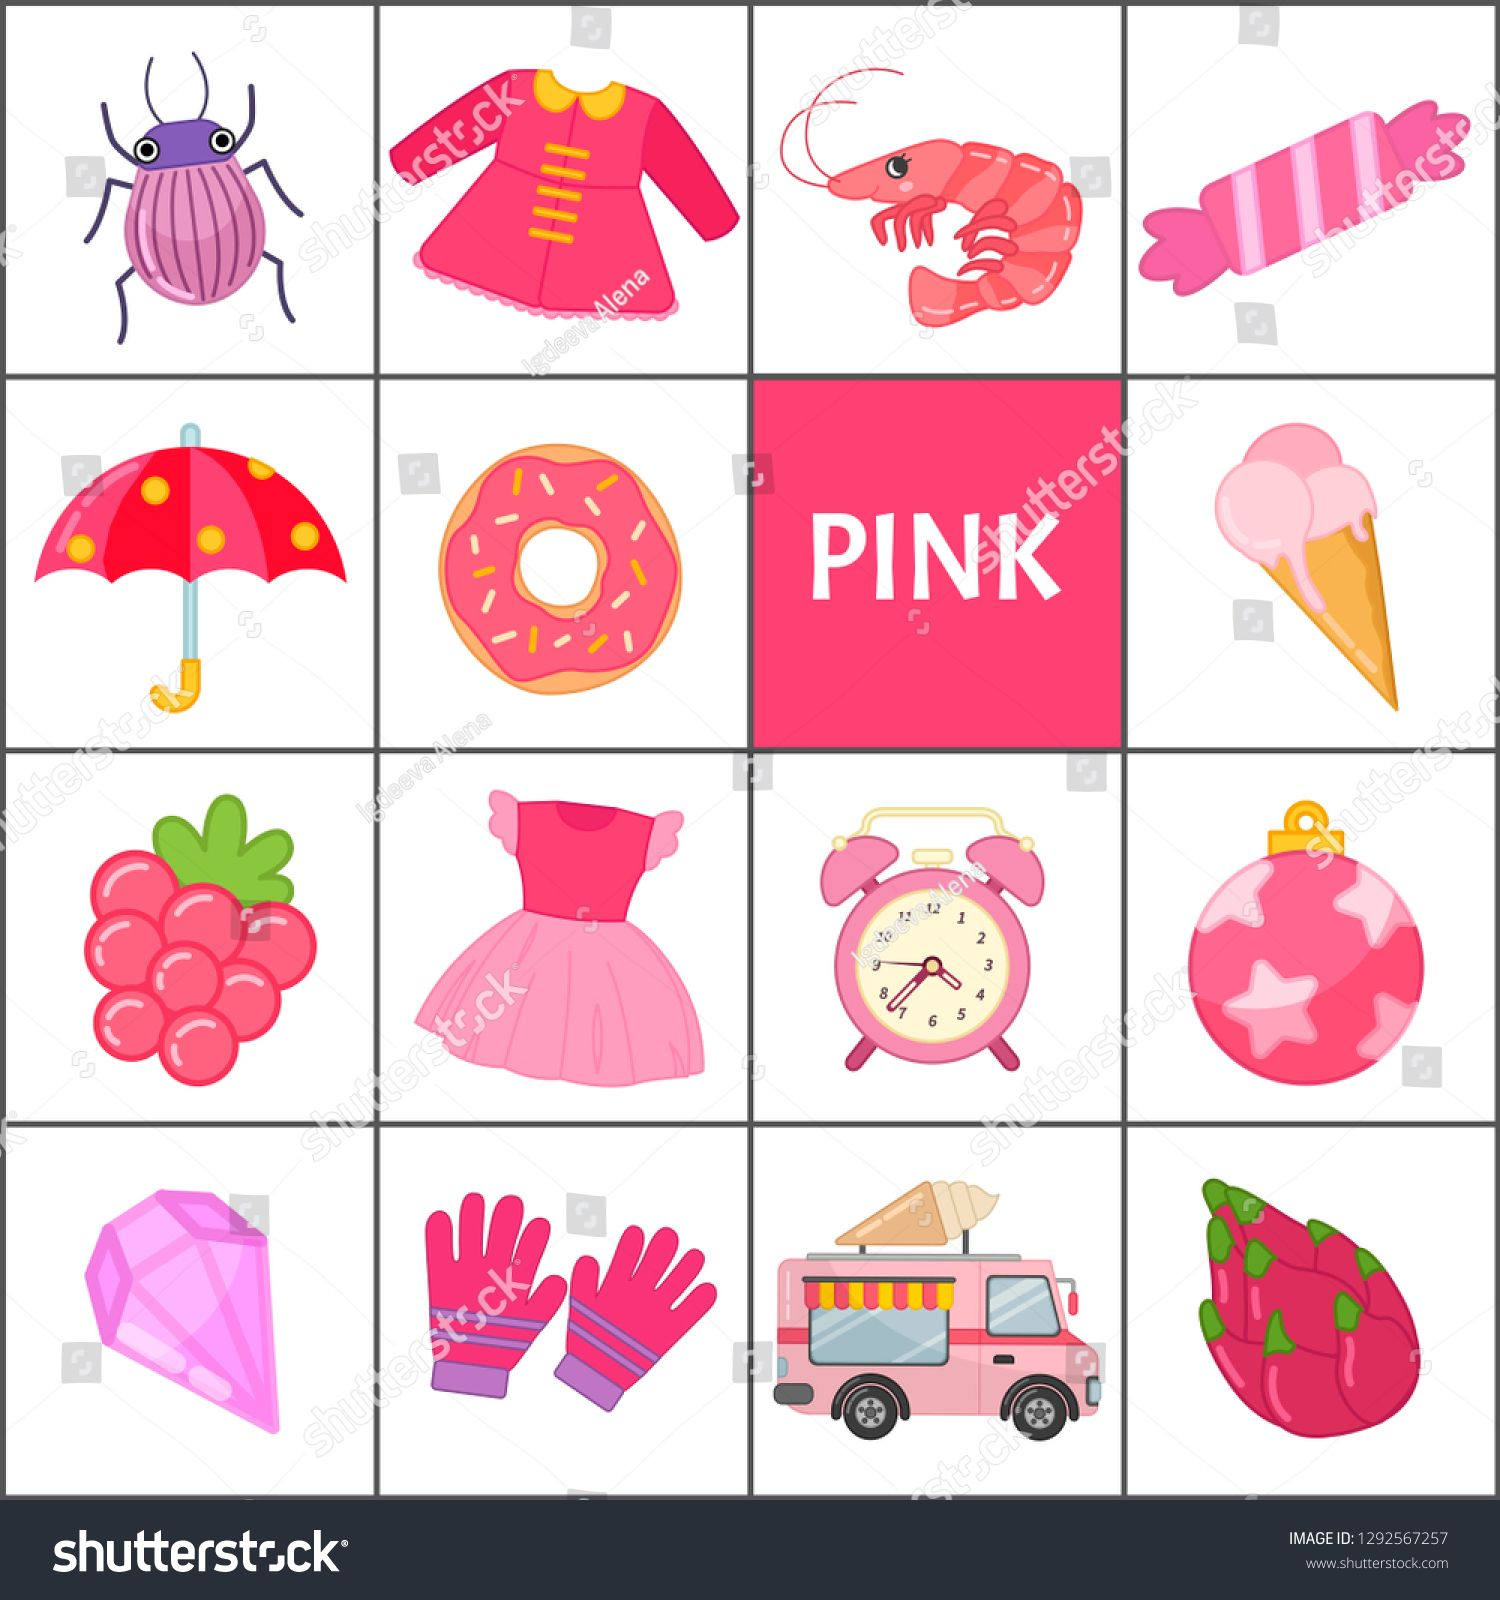 Learn The Primary Colors Pink Different Objects In Pink Color Educational Material For Children And Todd In 2021 Primary Colors Social Media Design Graphics Objects [ 1600 x 1500 Pixel ]